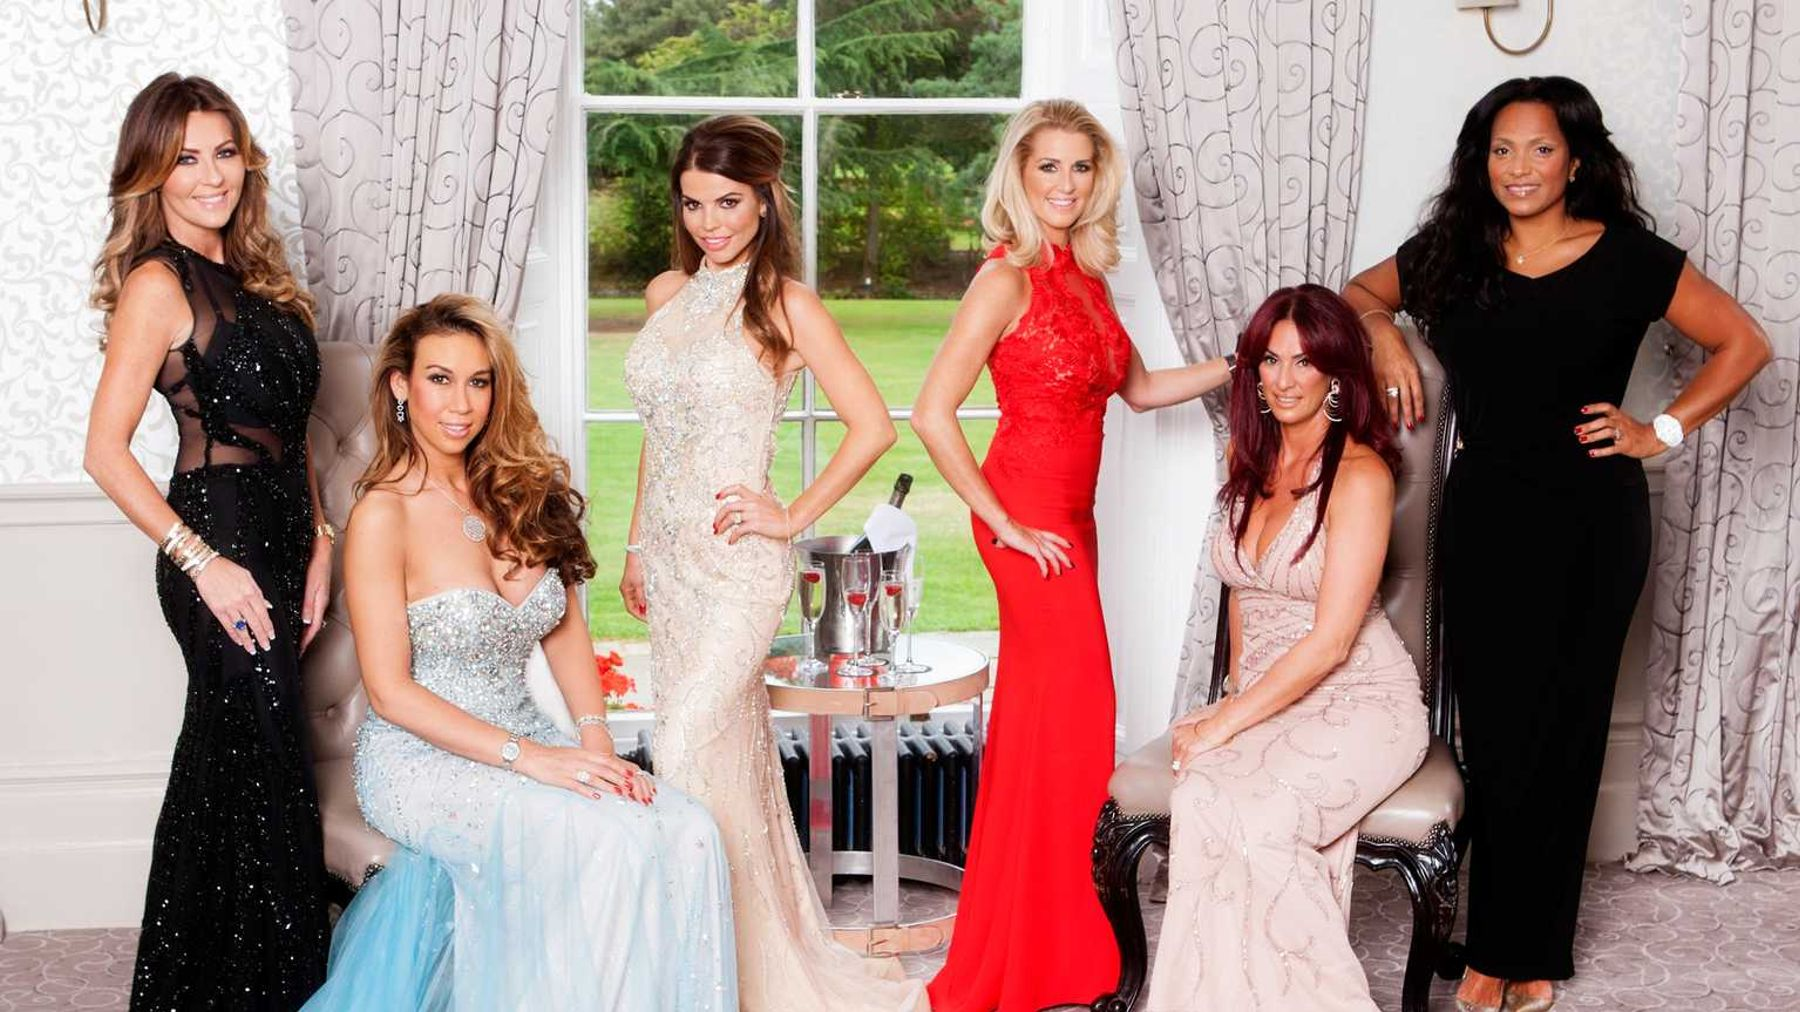 Cut Real Housewives of Cheshire stars - where they are now